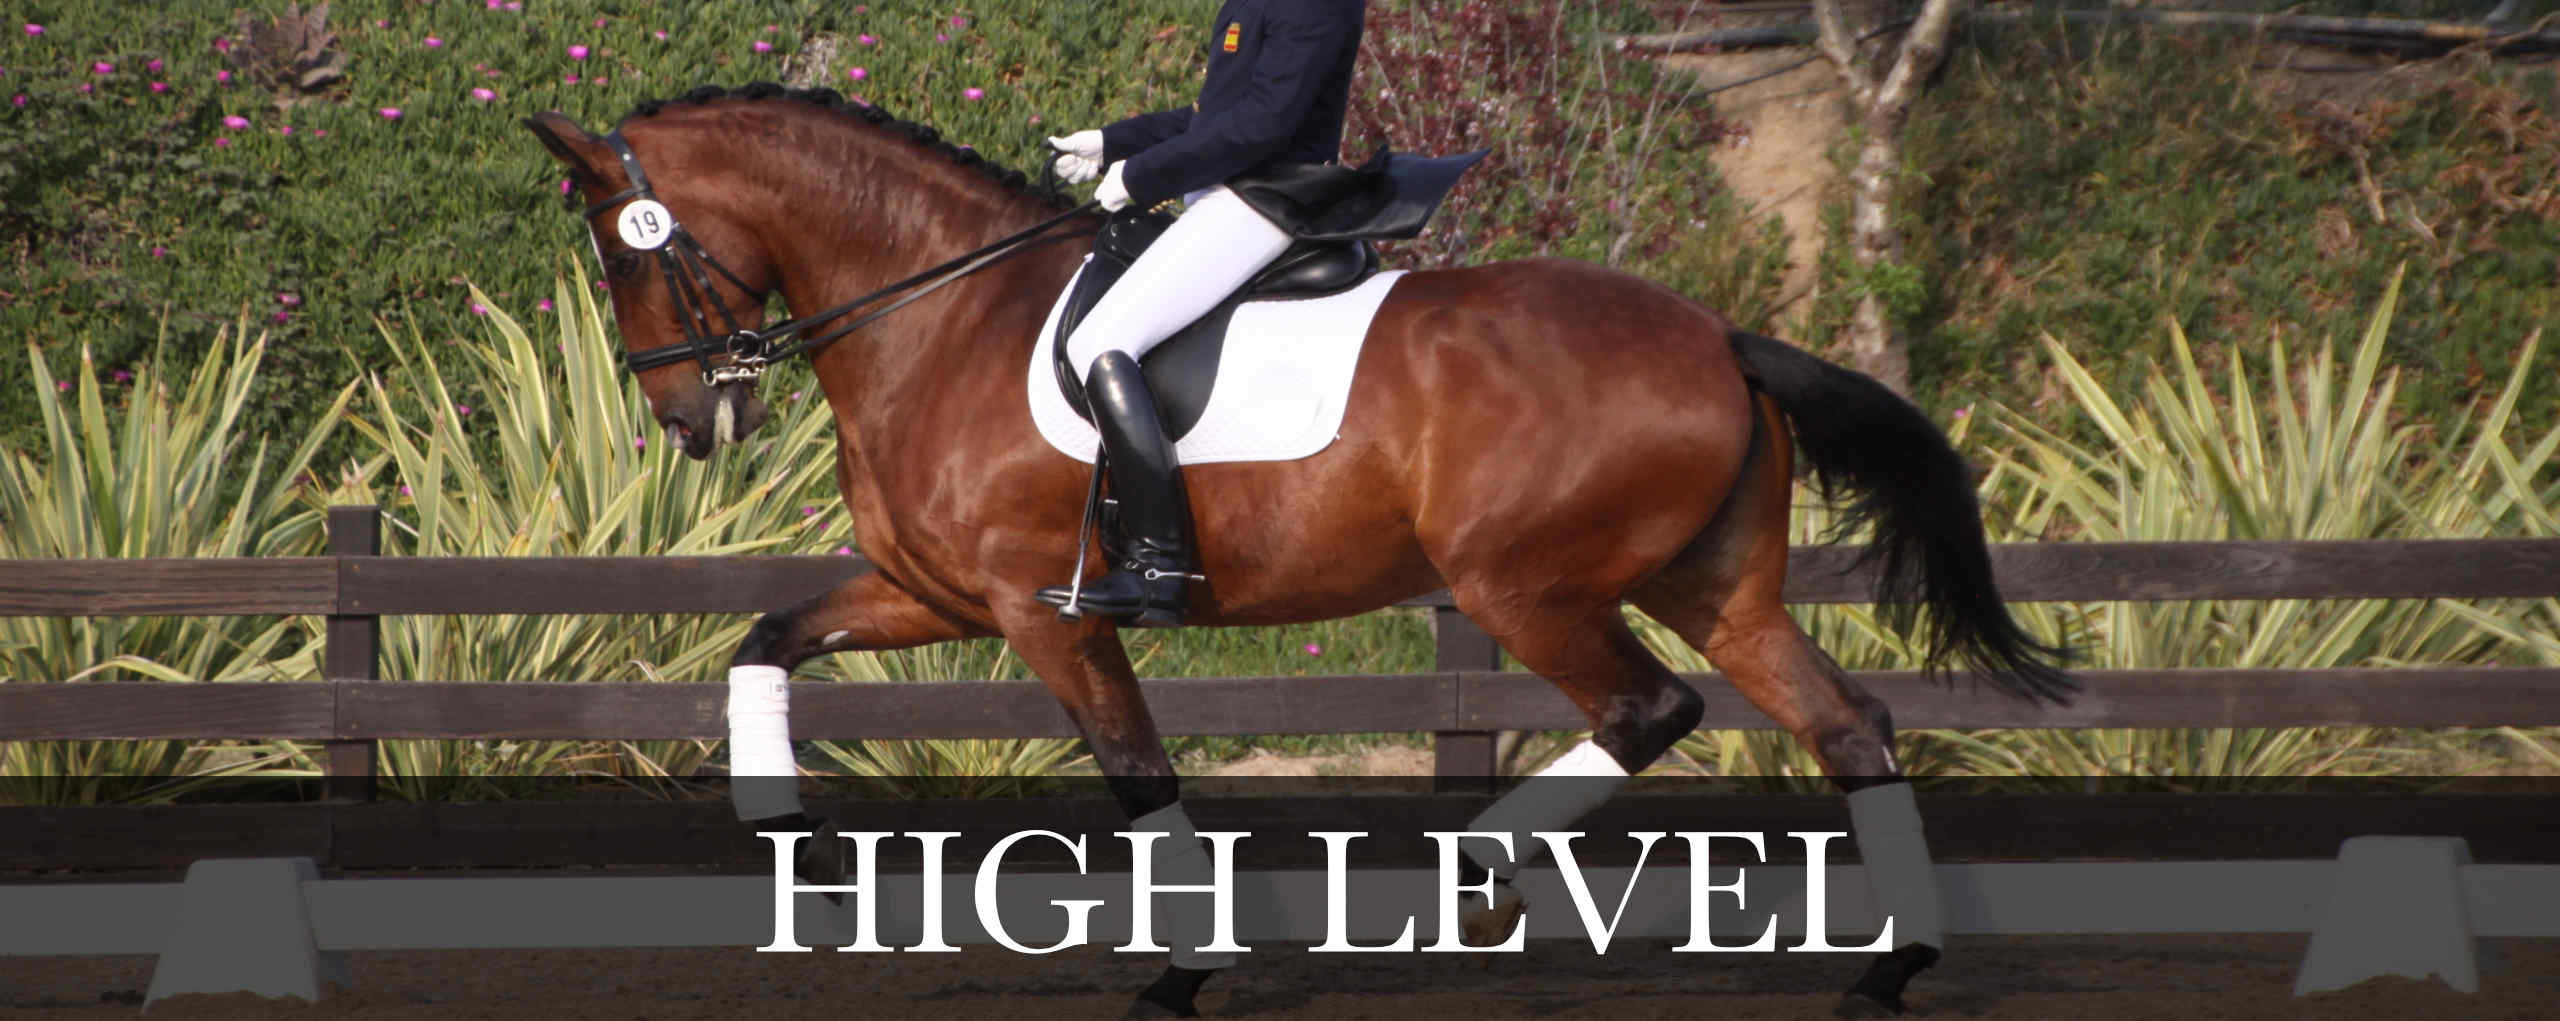 high level dressage pre and psl horses